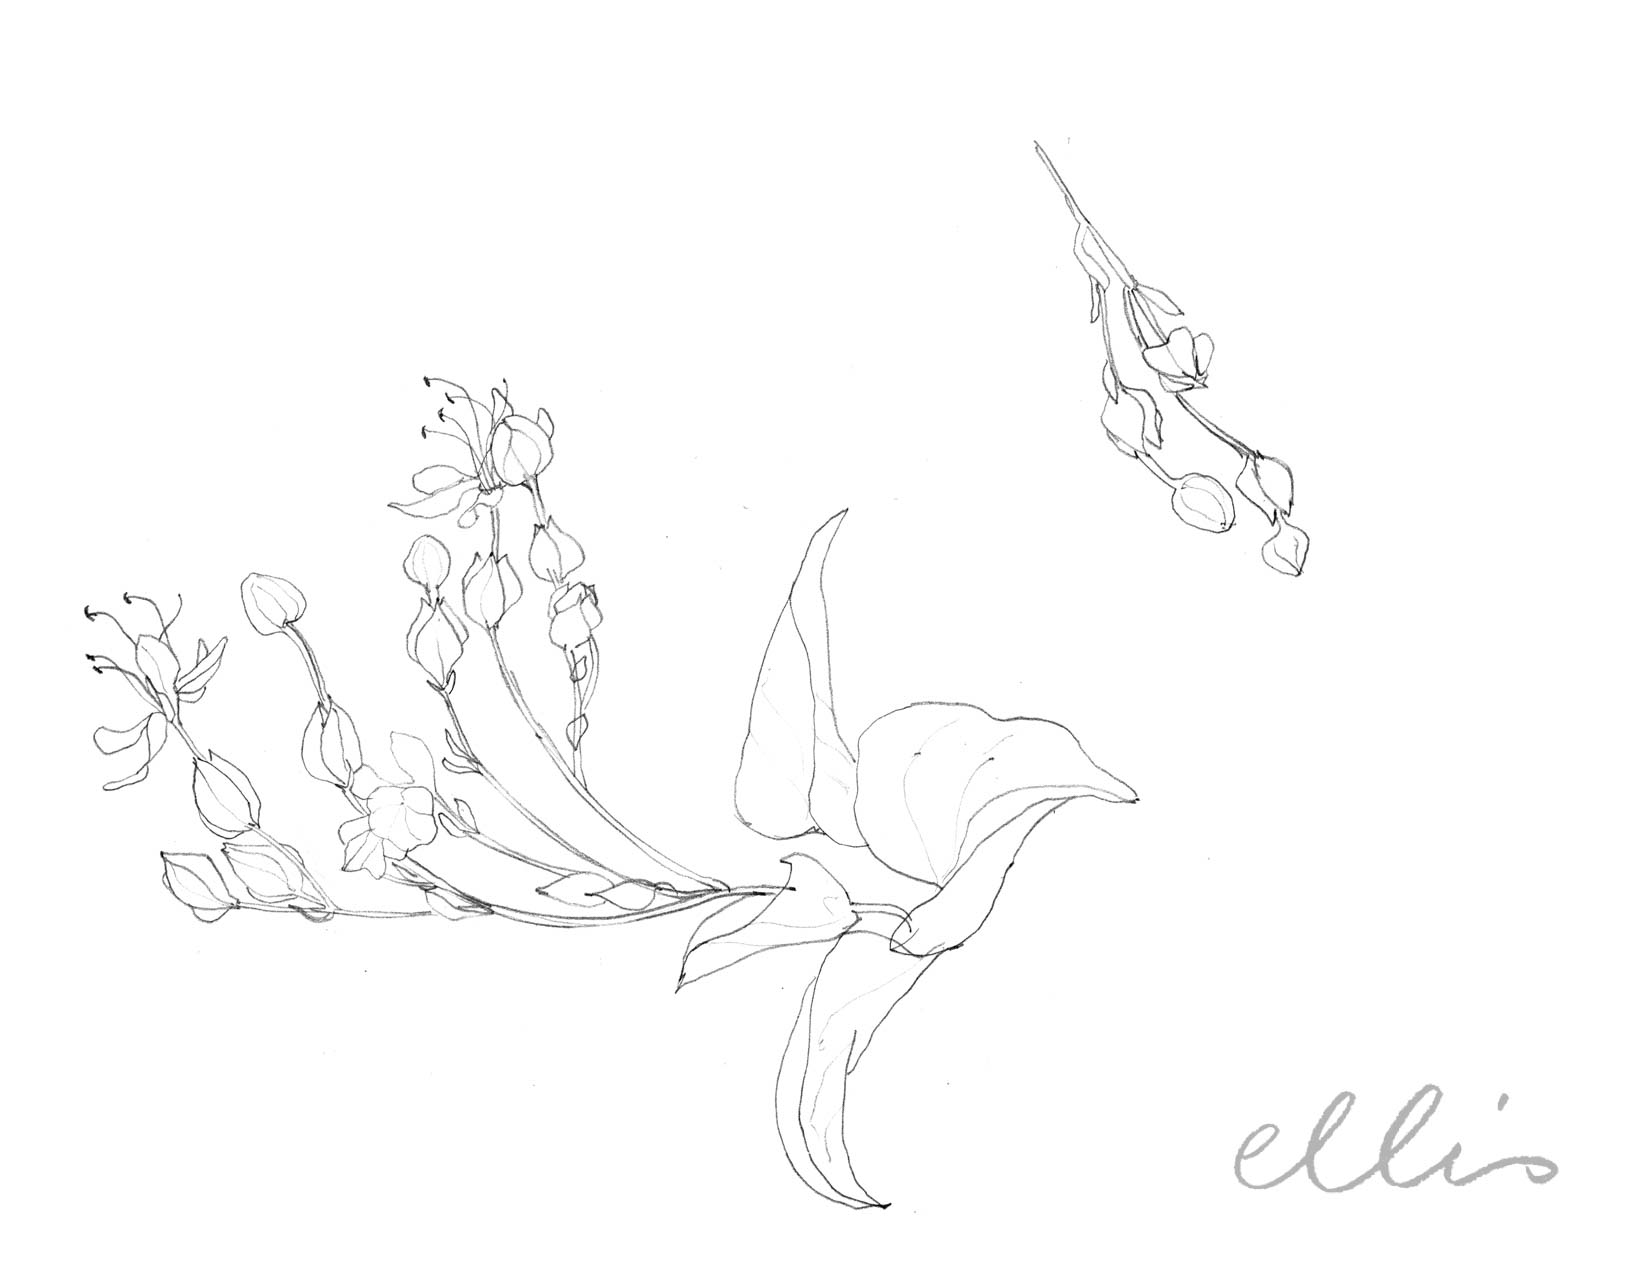 Erin Ellis_100 days project botanical drawings_2013-74.jpg